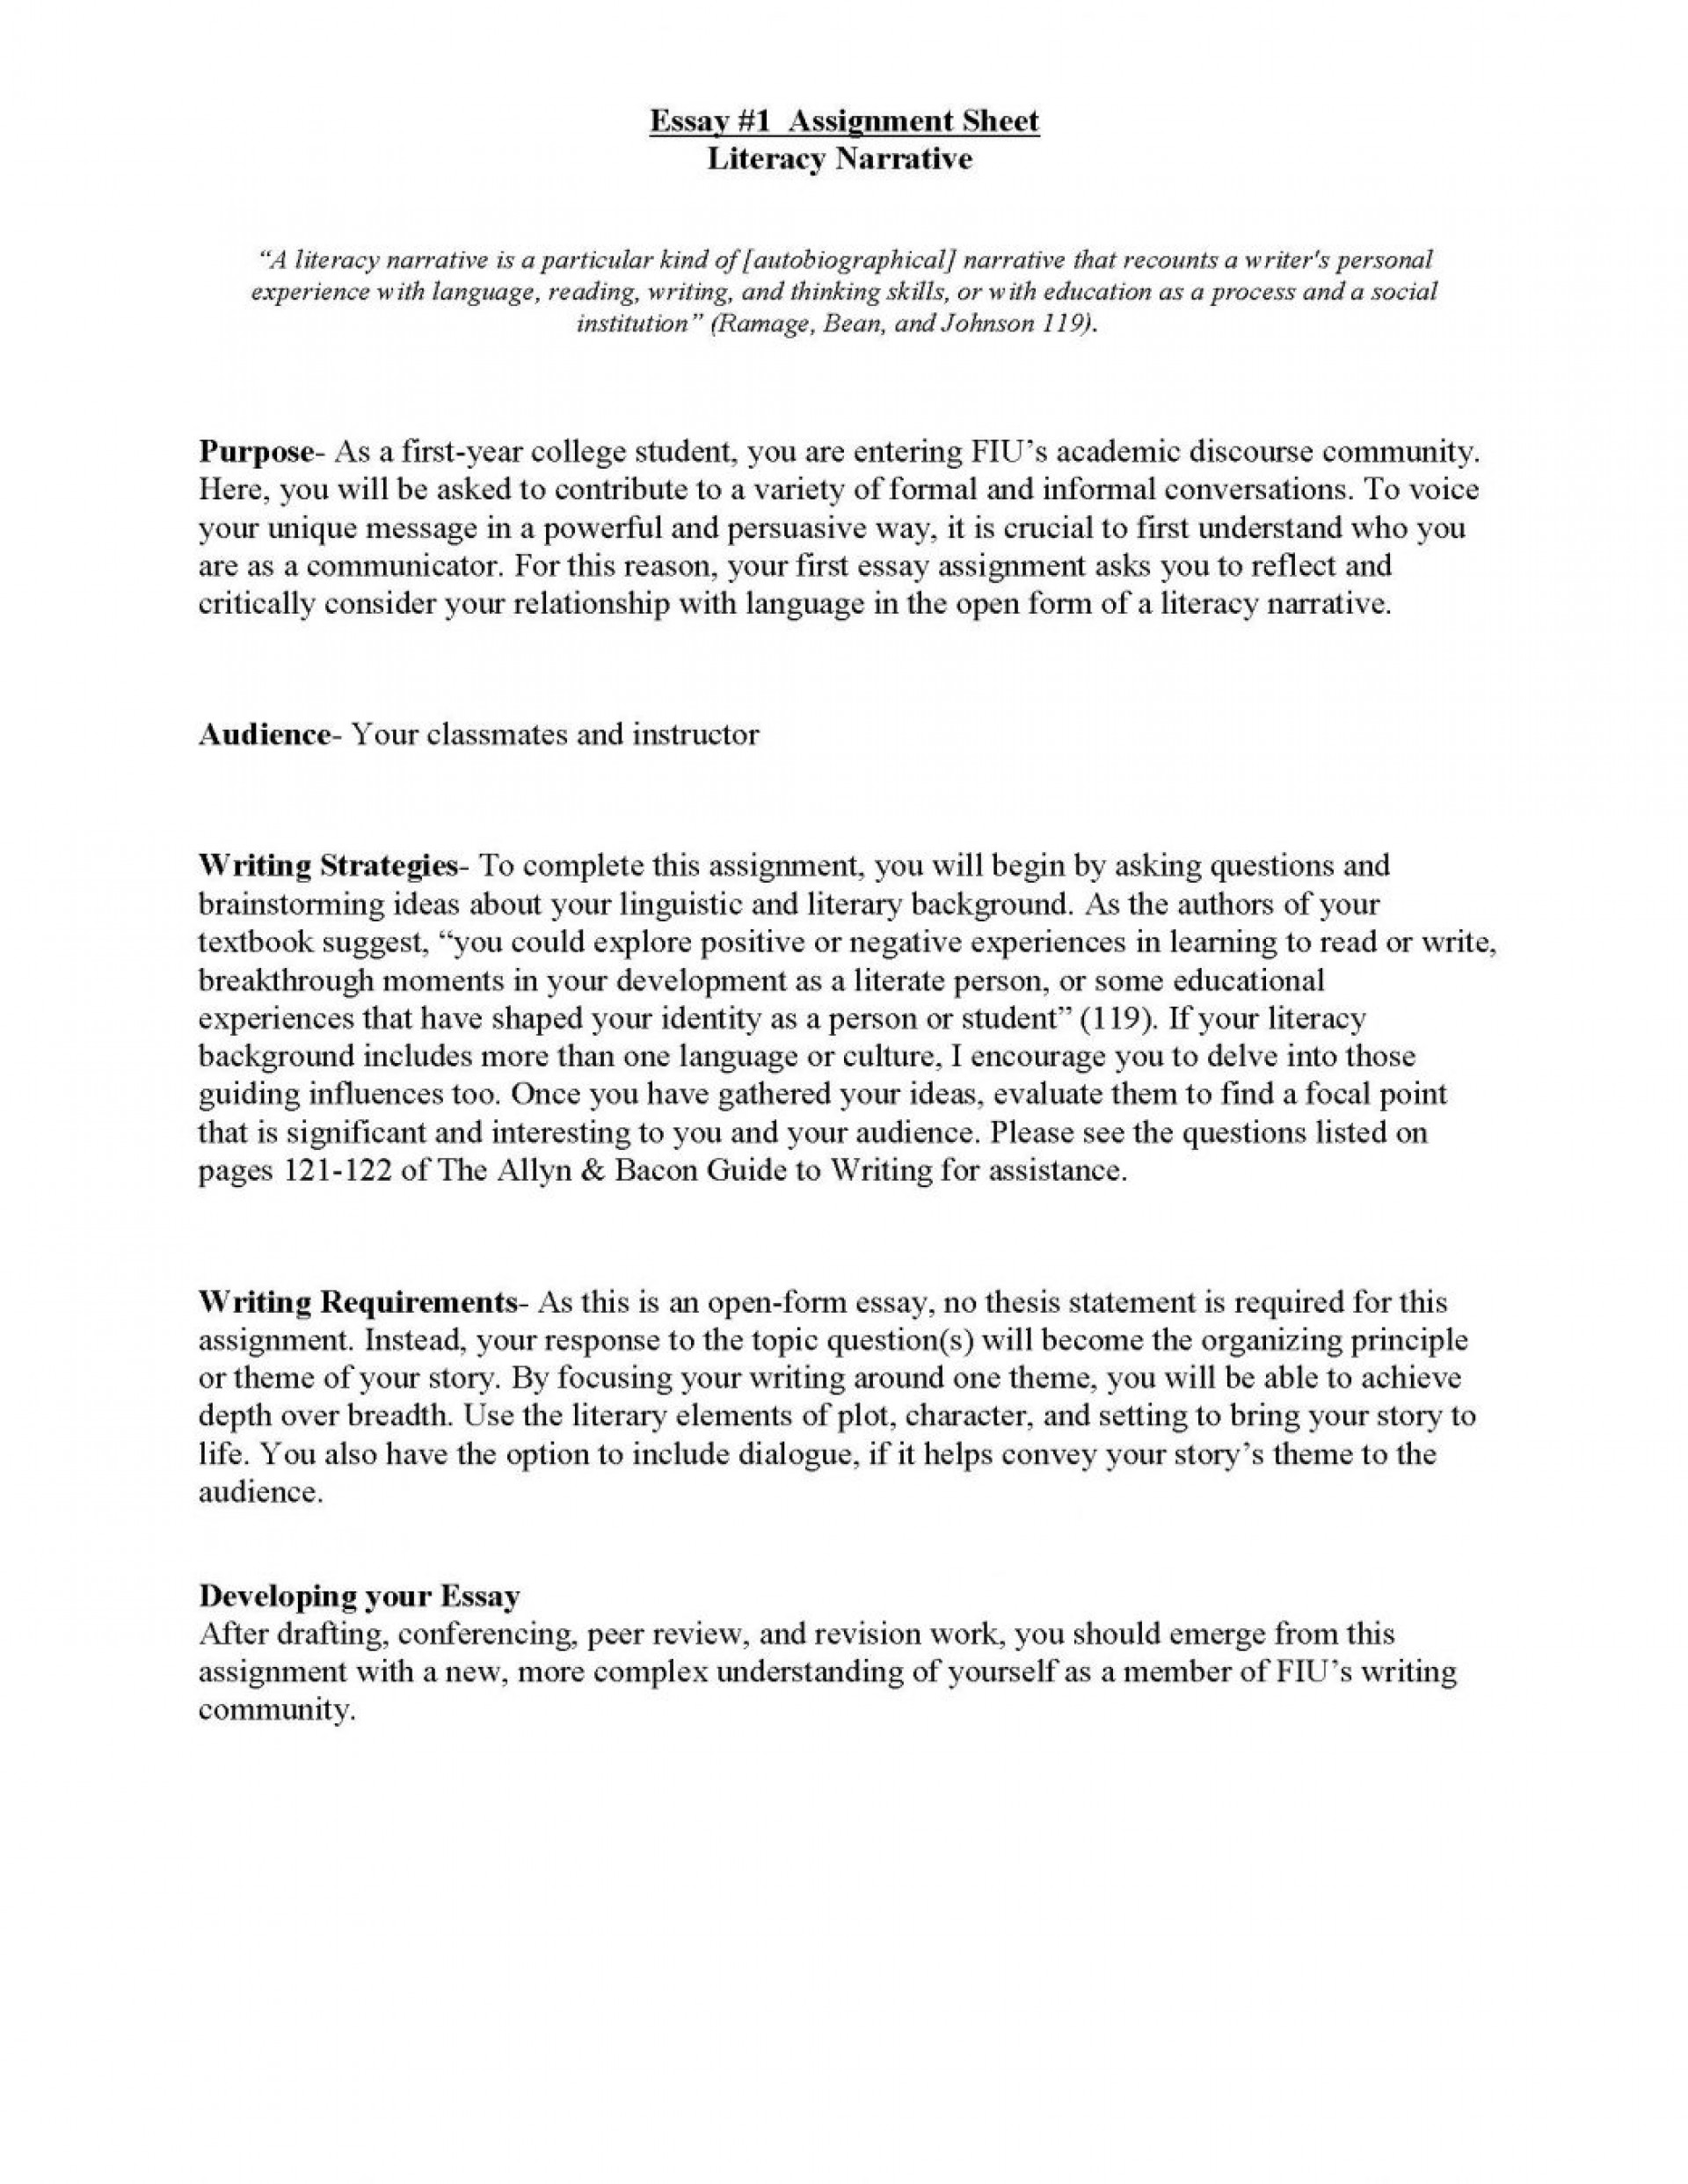 015 Short Narrative Essay Samples For High Schools Literacy Unit Assignment Spring 2012 P Personal Pdf 1048x1356 Fantastic About Life Topics 1920